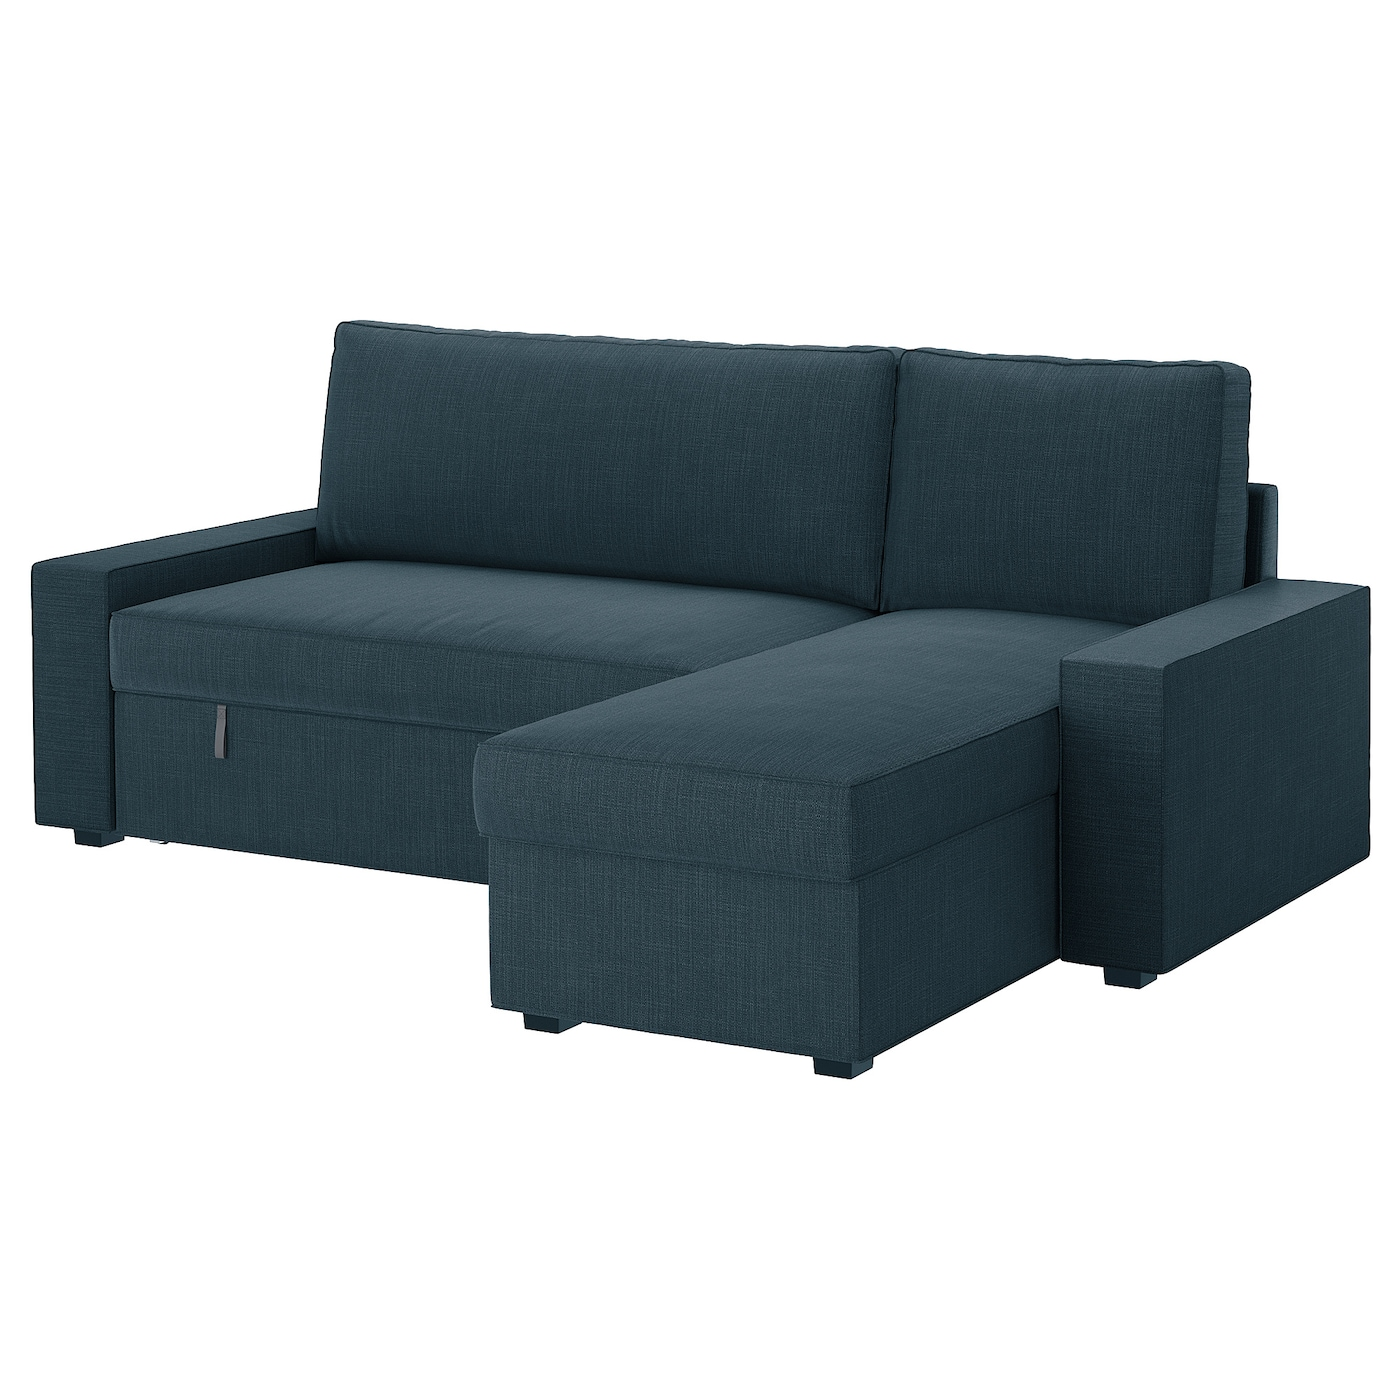 Vilasund sofa bed with chaise longue hillared dark blue ikea for Chaise 65 cm ikea